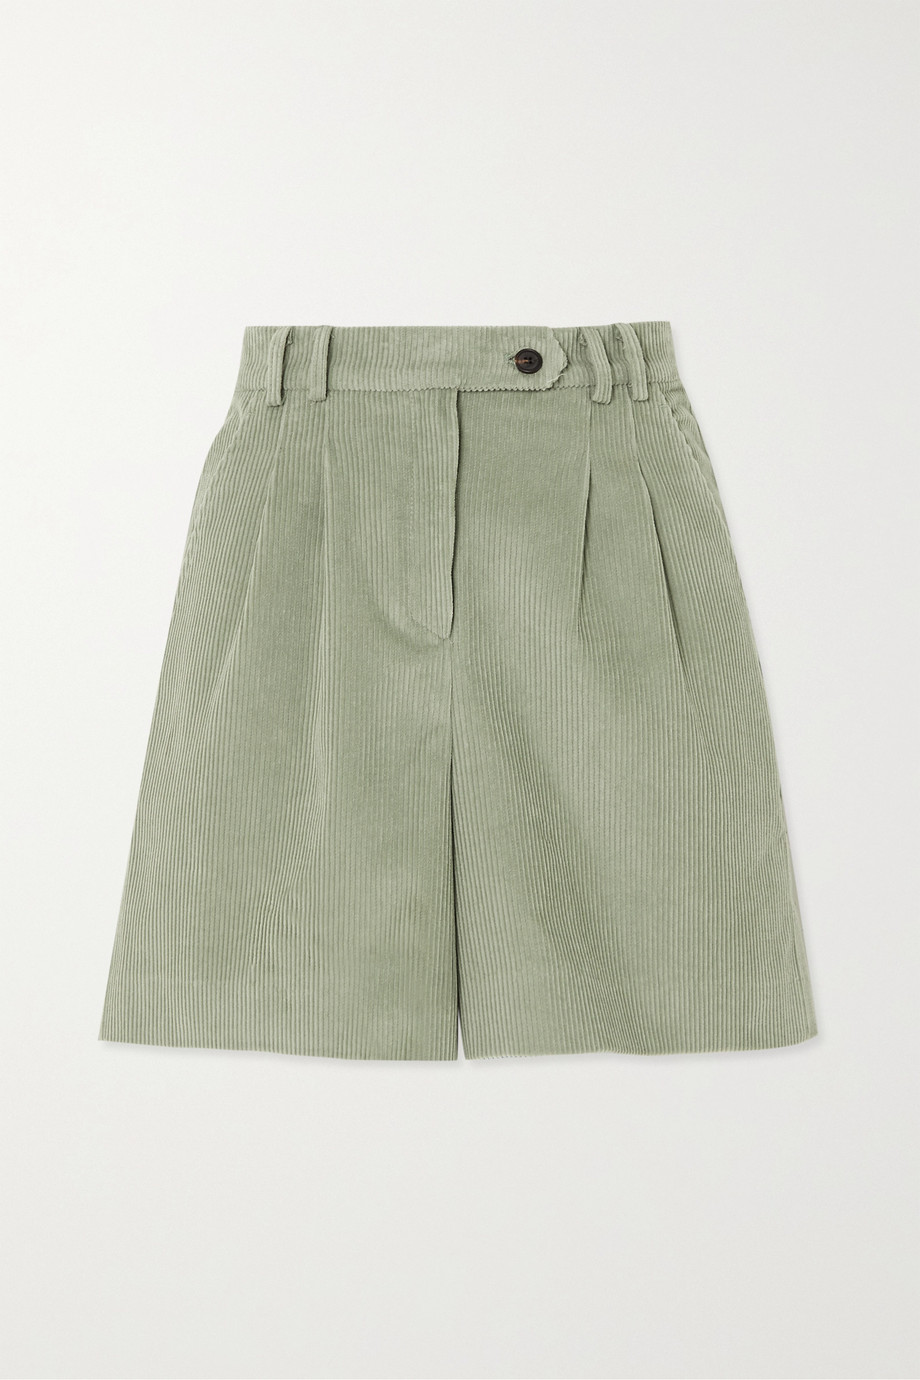 Frankie Shop Gala cotton-corduroy shorts